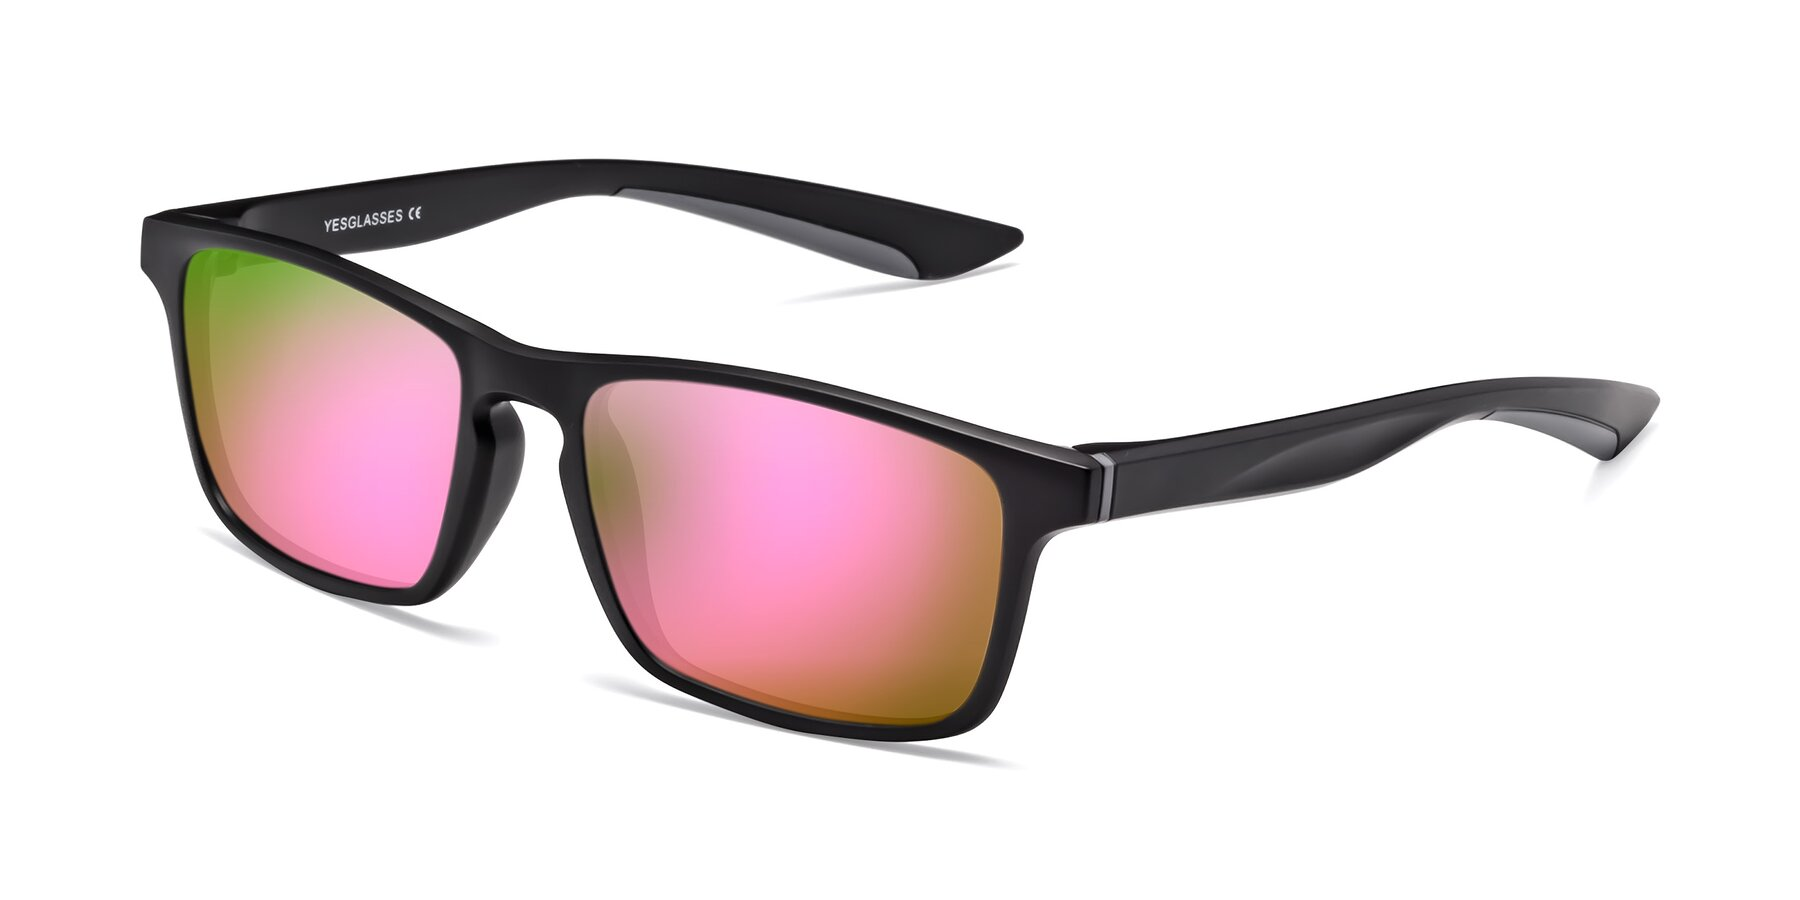 Angle of Passion in Matte Black-Gray with Pink Mirrored Lenses